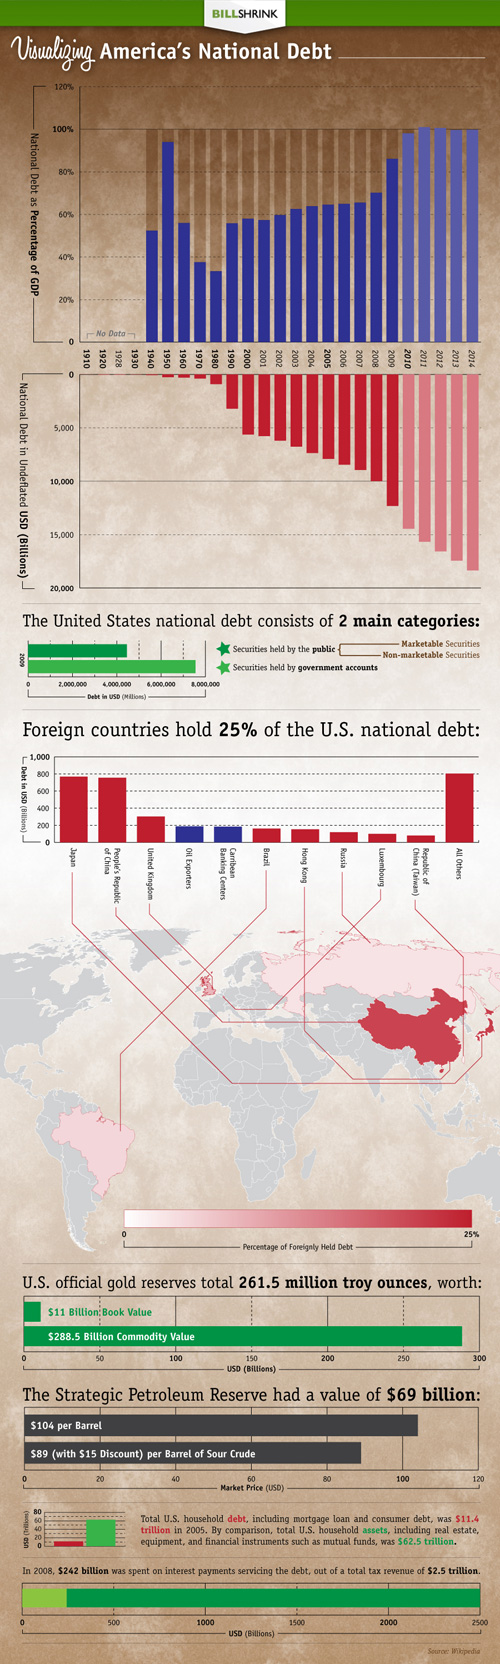 Visualizing America's National Debt